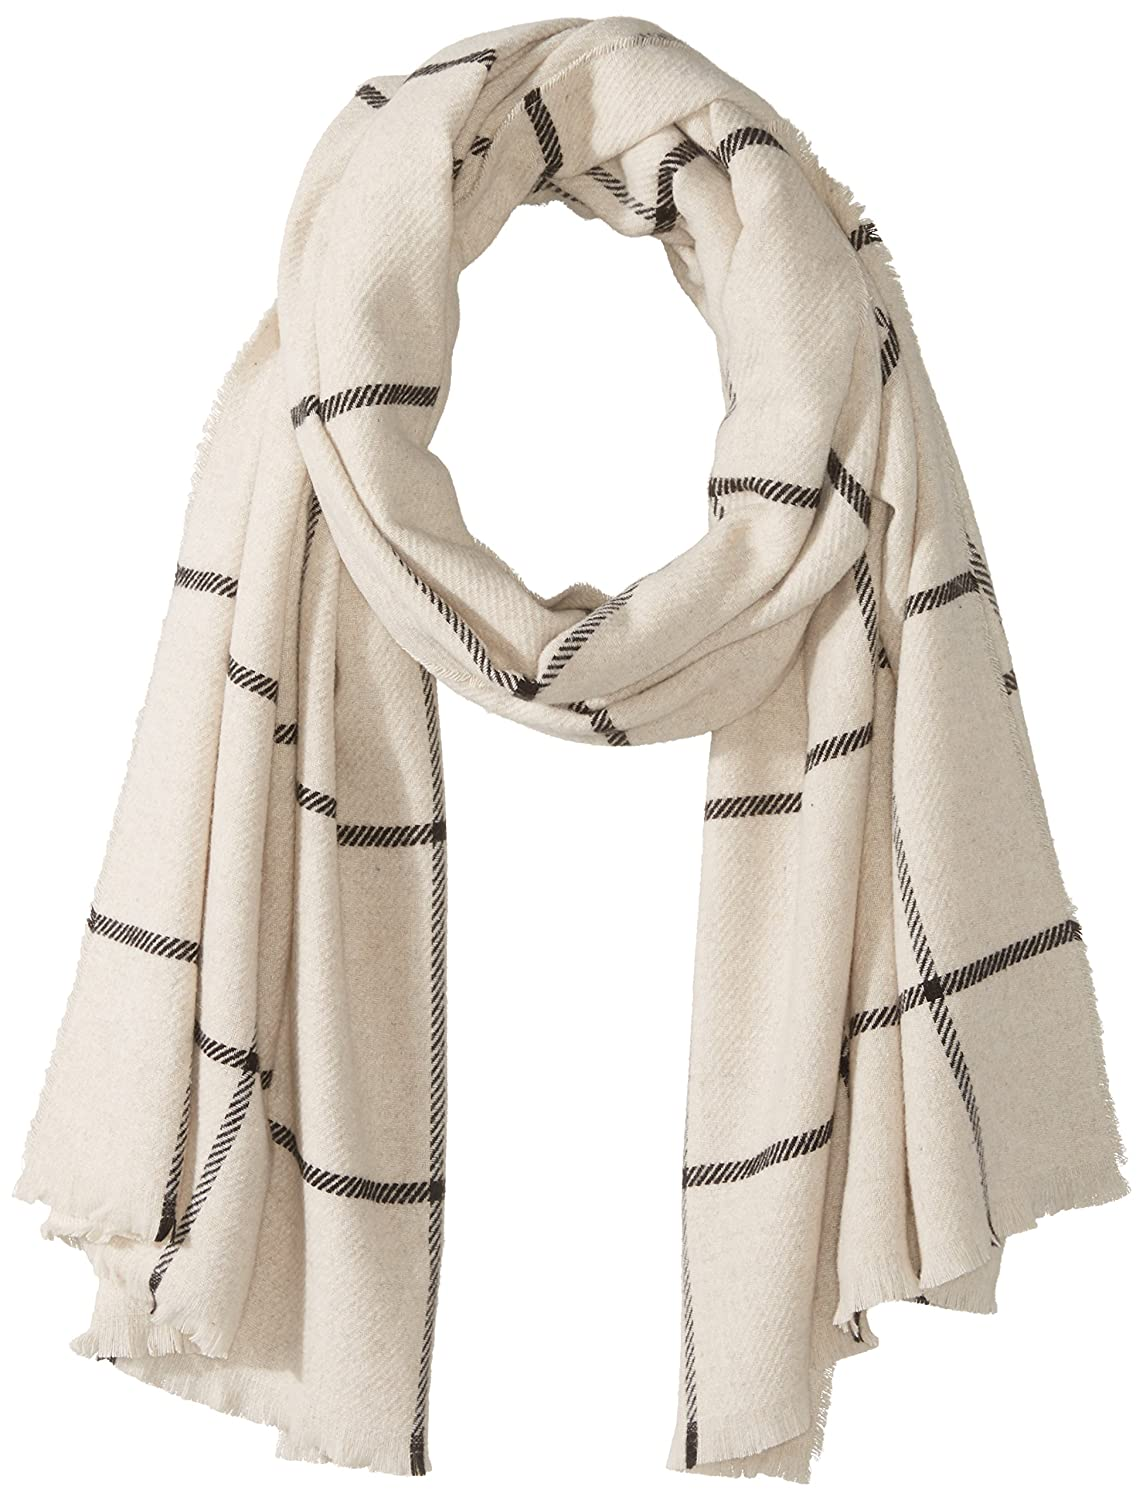 French Connection Women's Window Pane Check Scarf classic cream/black O/S SSICT